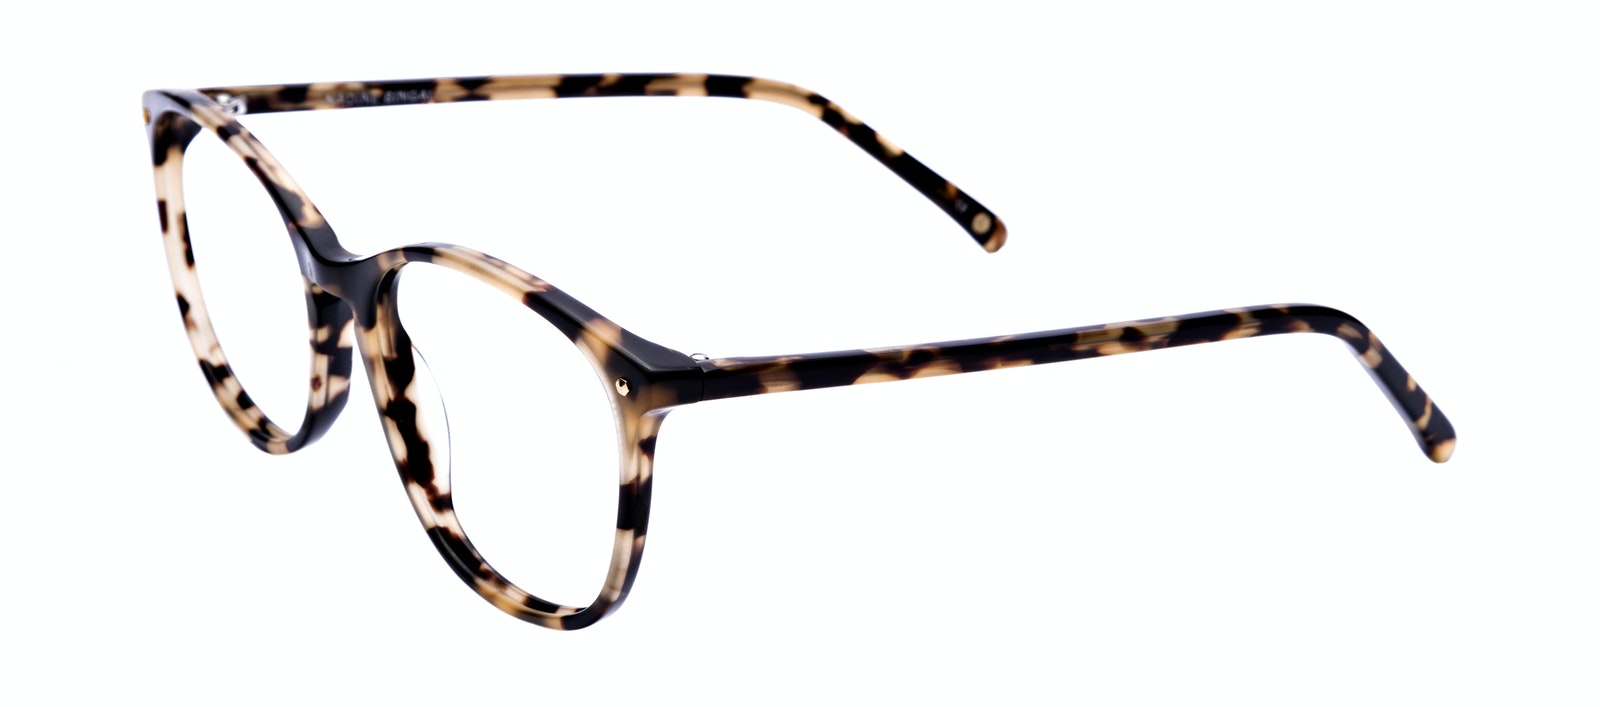 Affordable Fashion Glasses Rectangle Square Round Eyeglasses Women Nadine Bingal Tilt